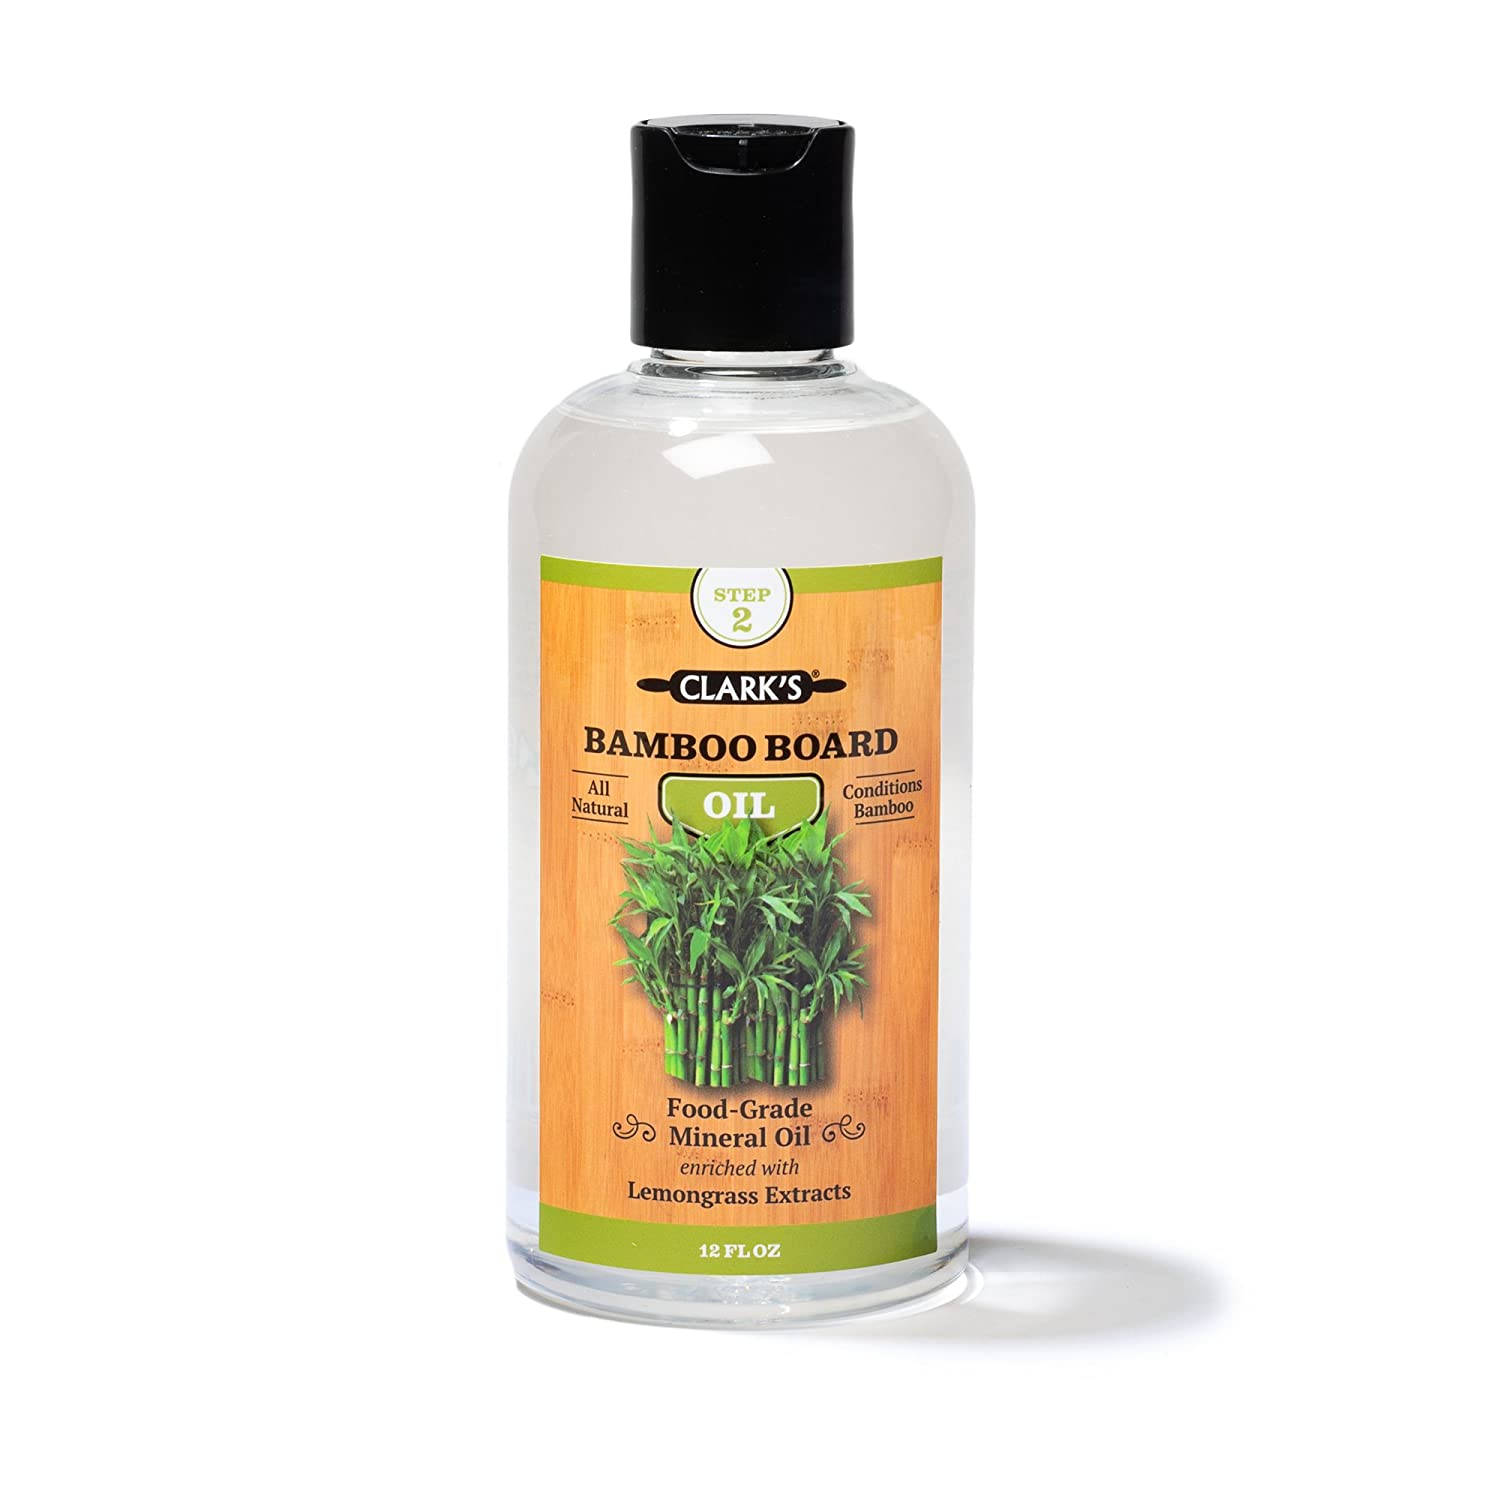 Clark's Bamboo Board Oil (12oz)   Enriched with Lemongrass Extract   Specially Formulated for Bamboo Cutting Boards and All Things Bamboo CLARKS 853324008227